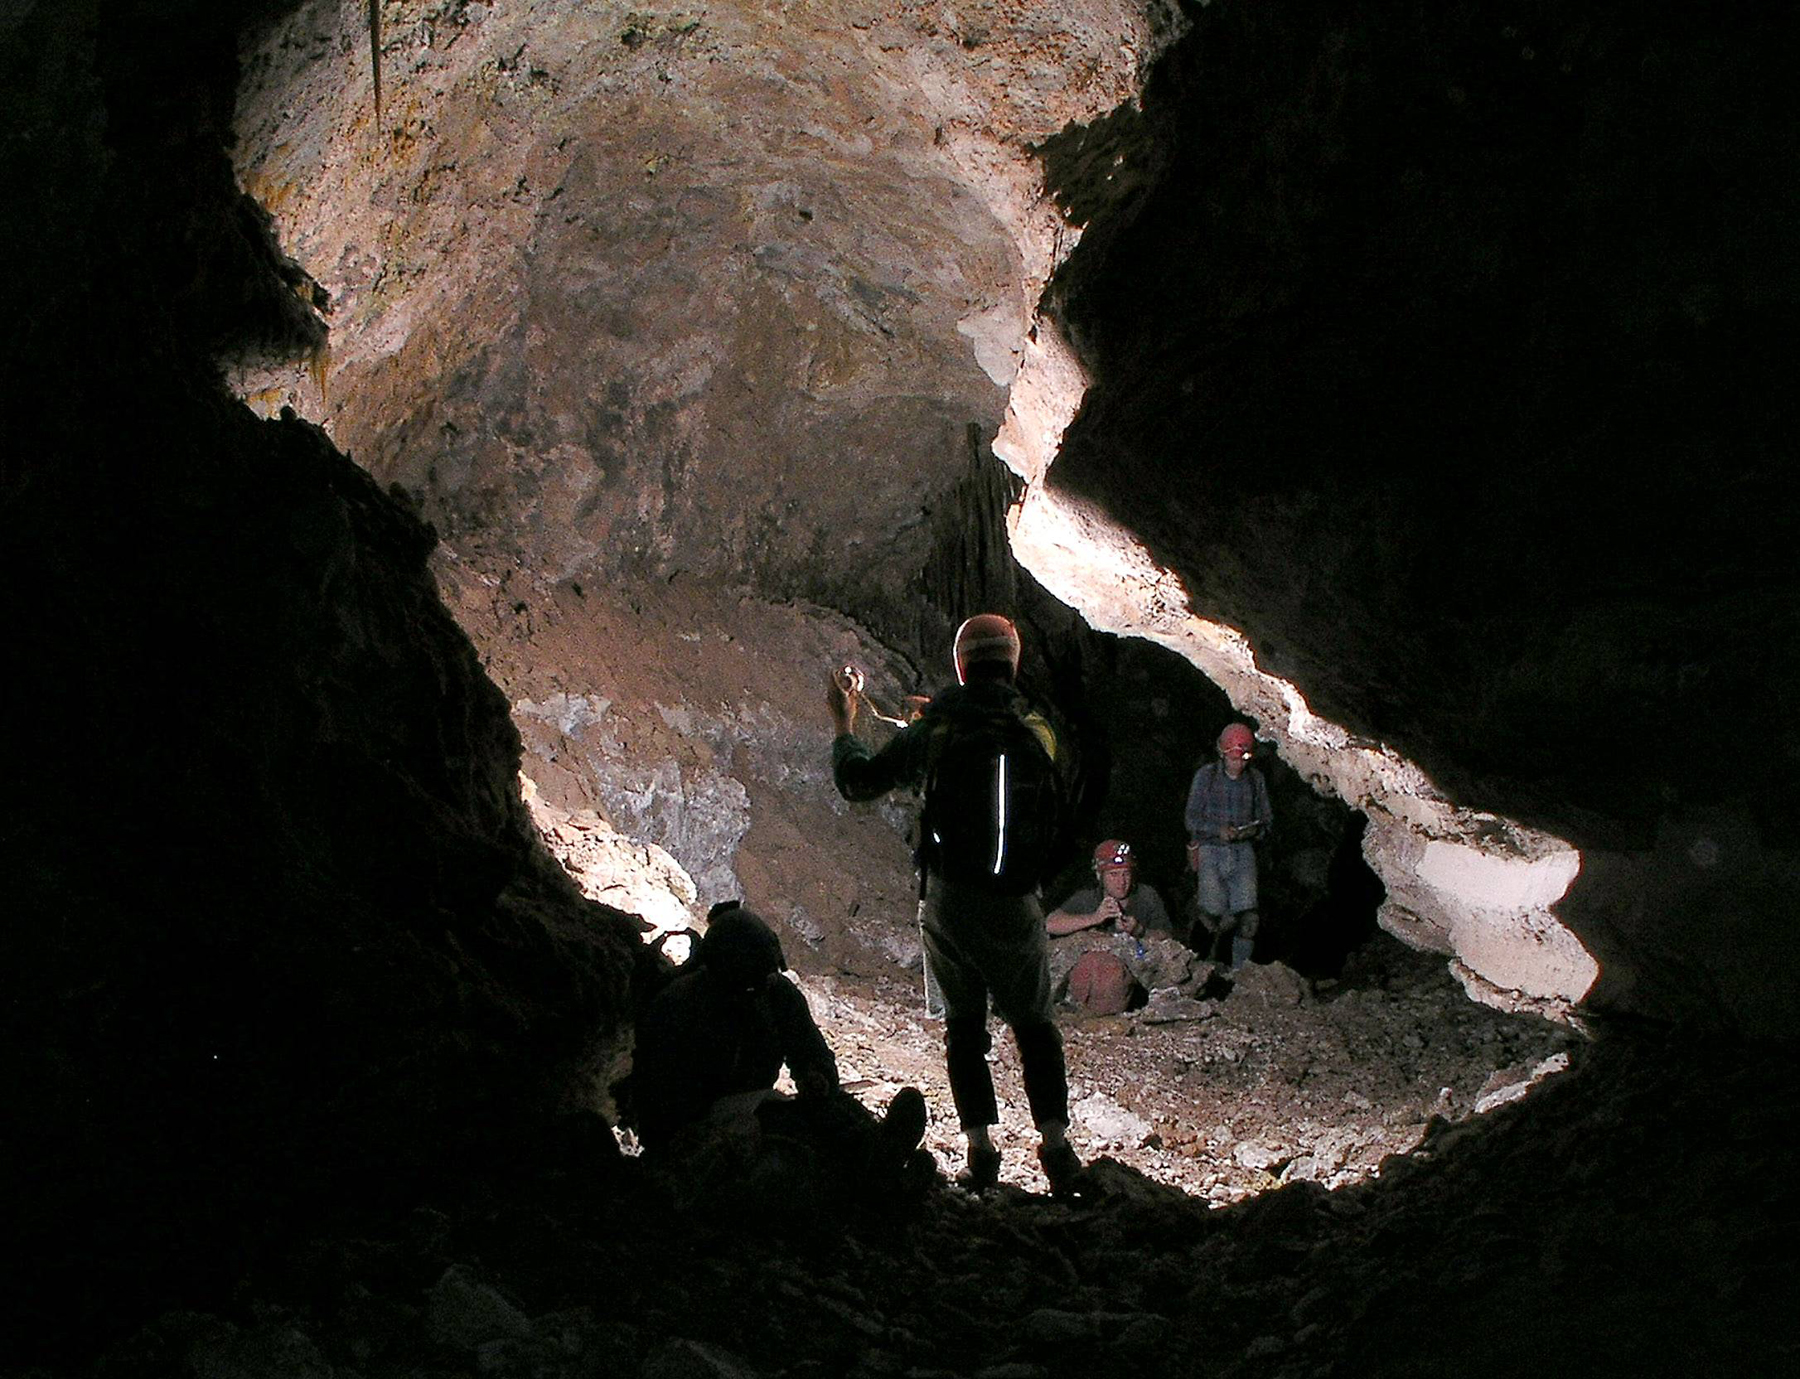 fort-stanton-snowy-river-cave-nca_7163389979_o.jpg